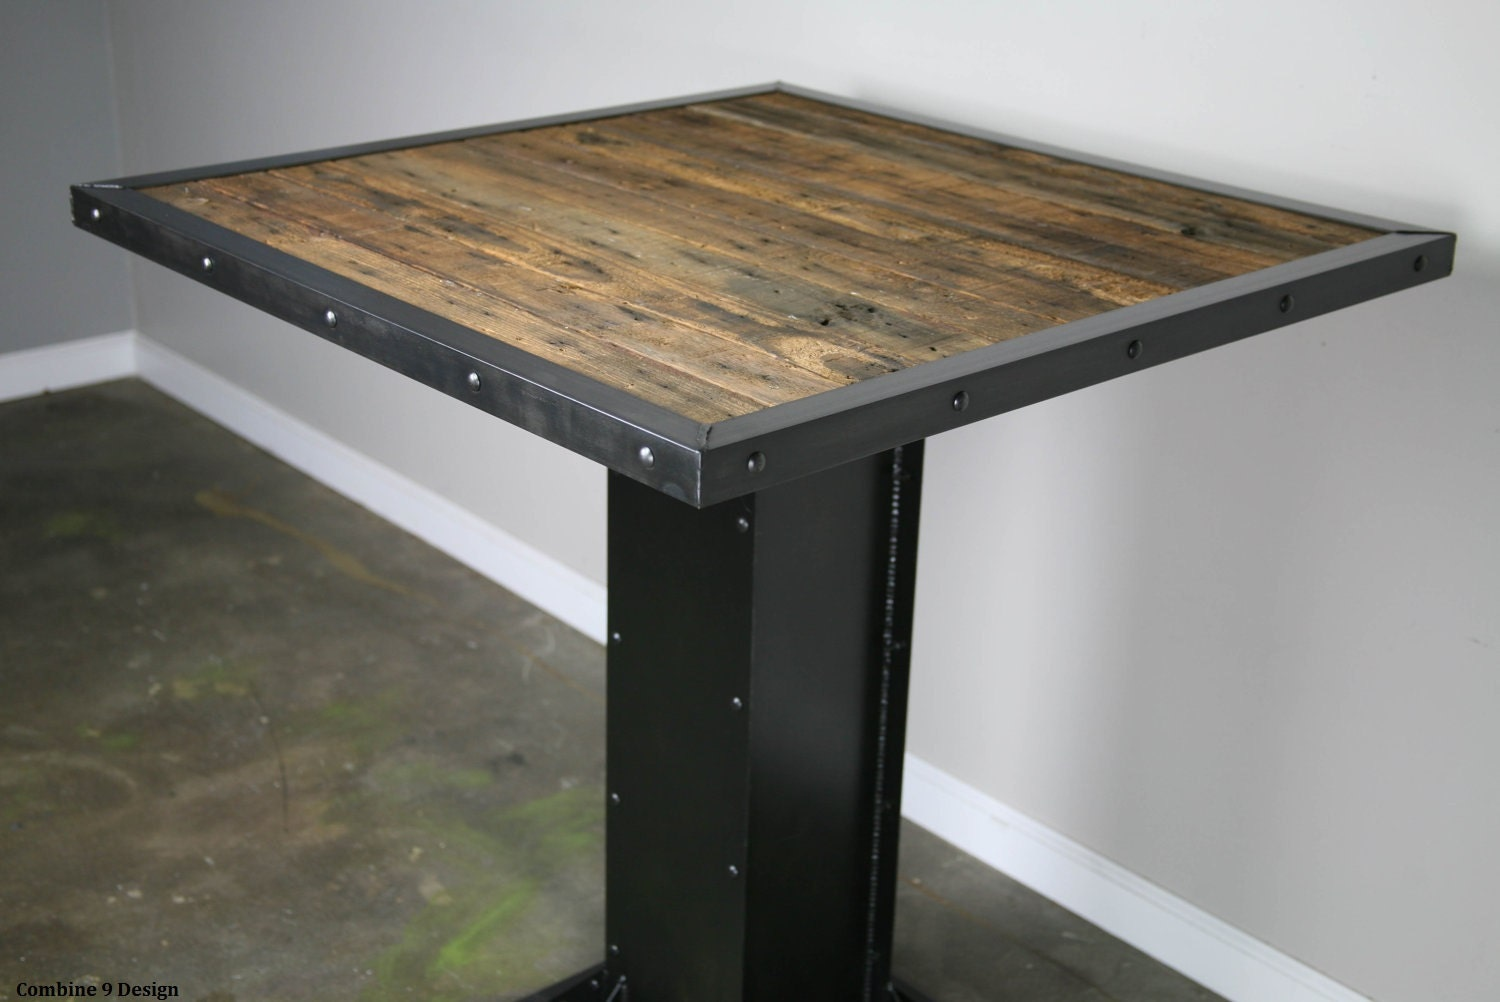 Bistro dining table modern industrial design reclaimed wood for Reclaimed wood table designs